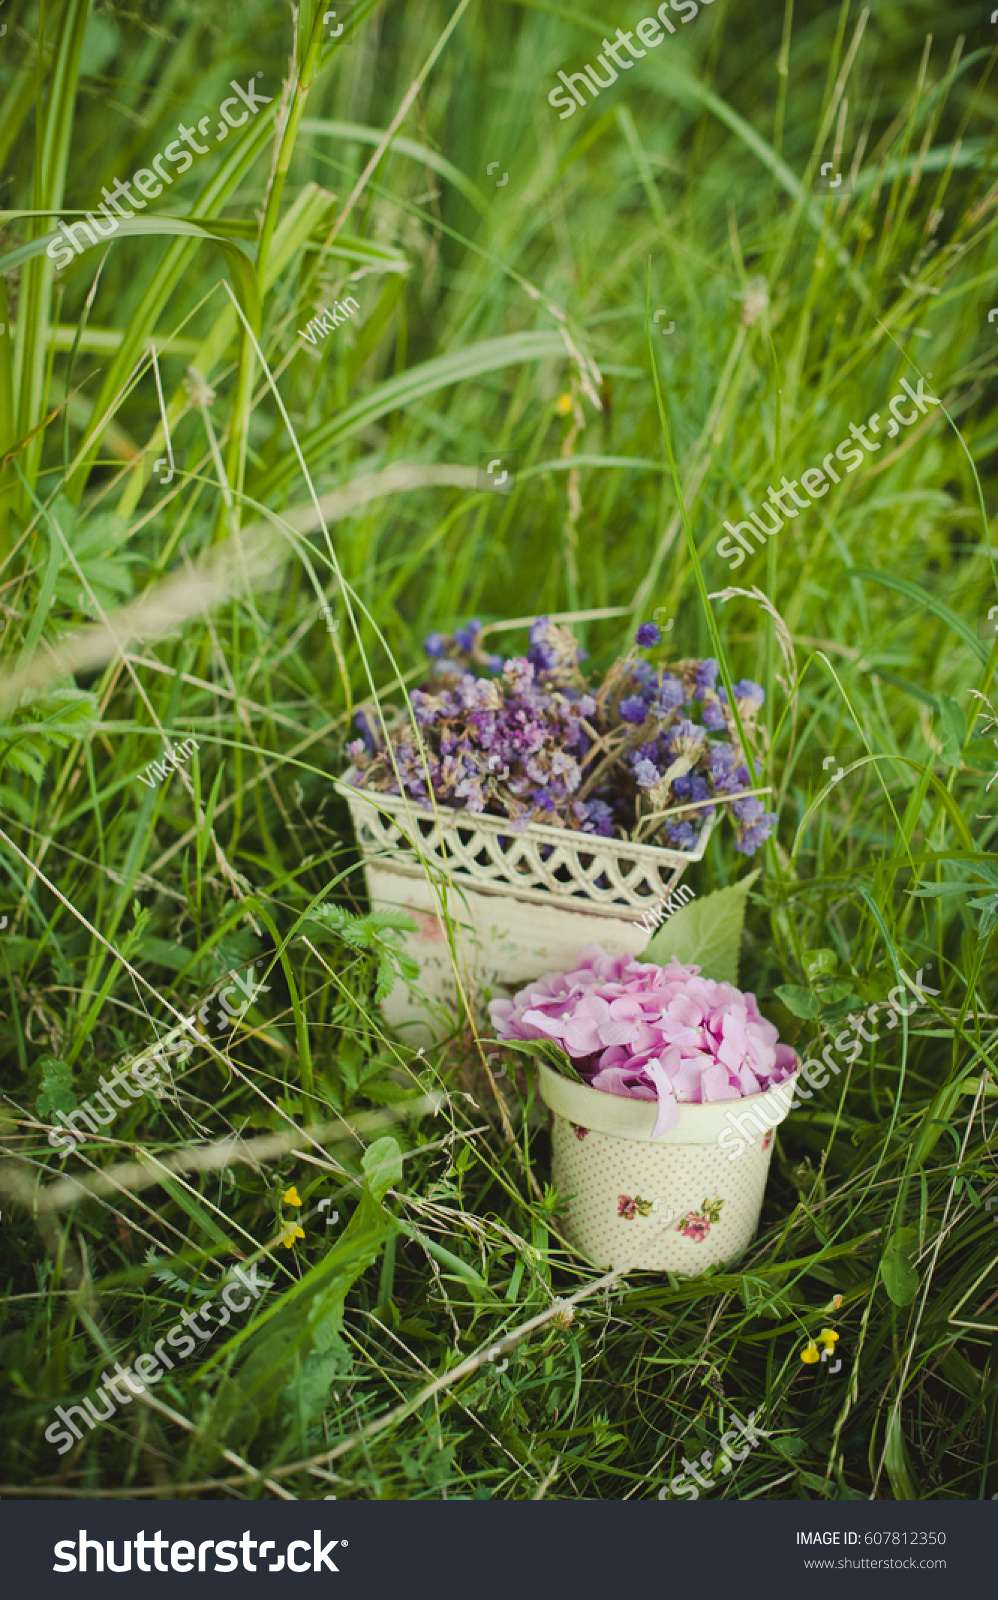 Purple Flowers Small Vase On Grass Stock Photo Image Royalty Free